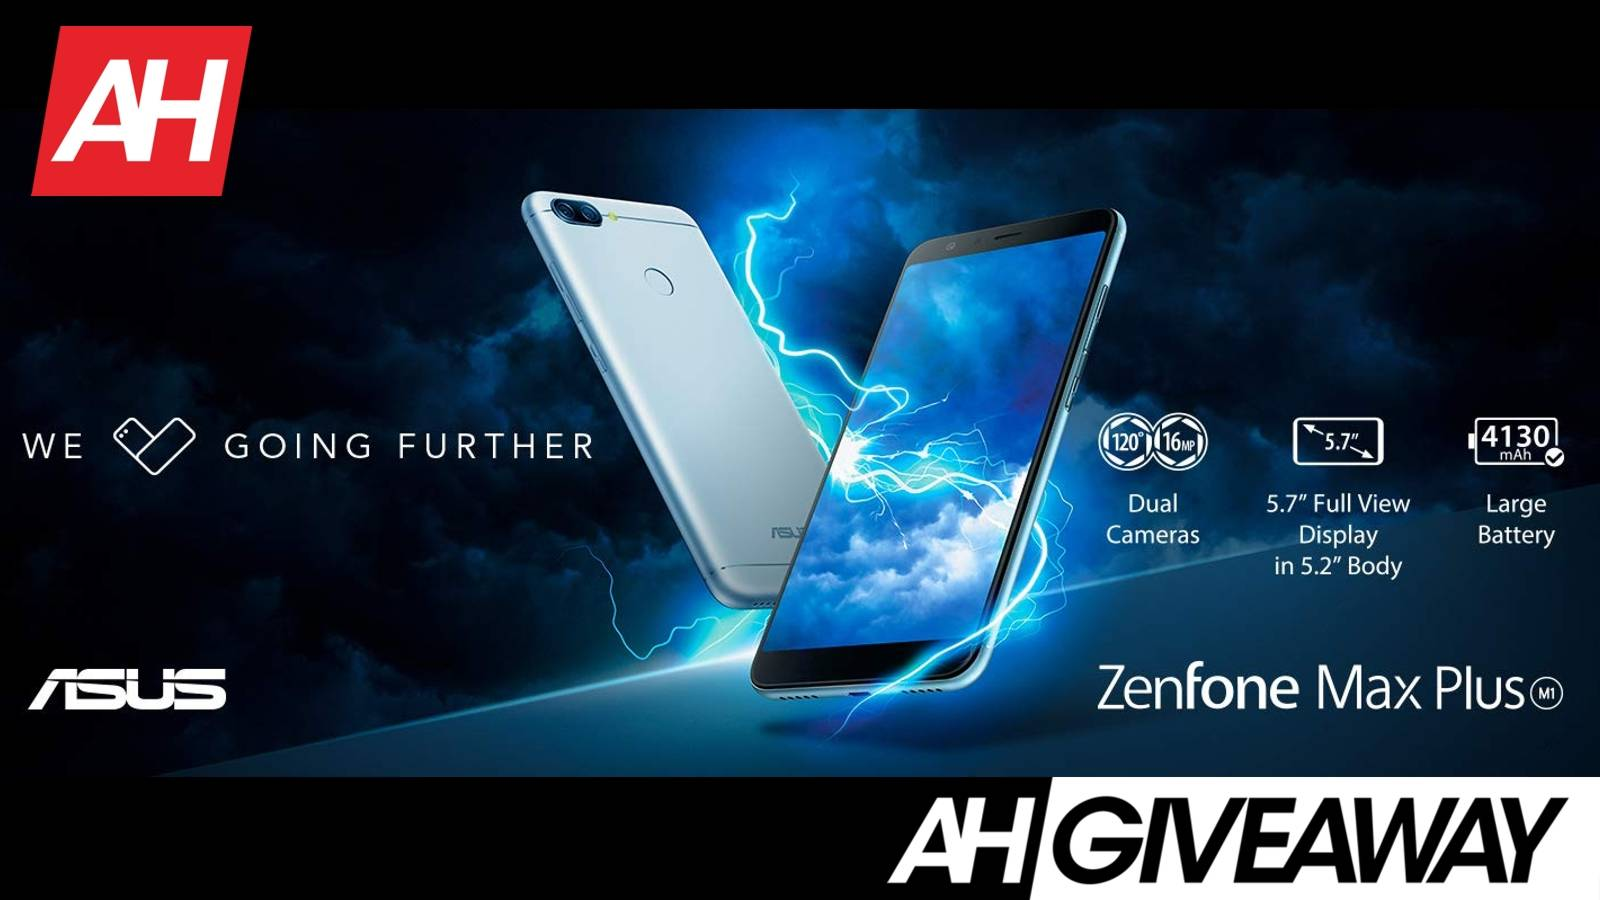 ANDROID HEADLINES ASUS Zenfone Max Plus Giveaway 2019 3 result 4